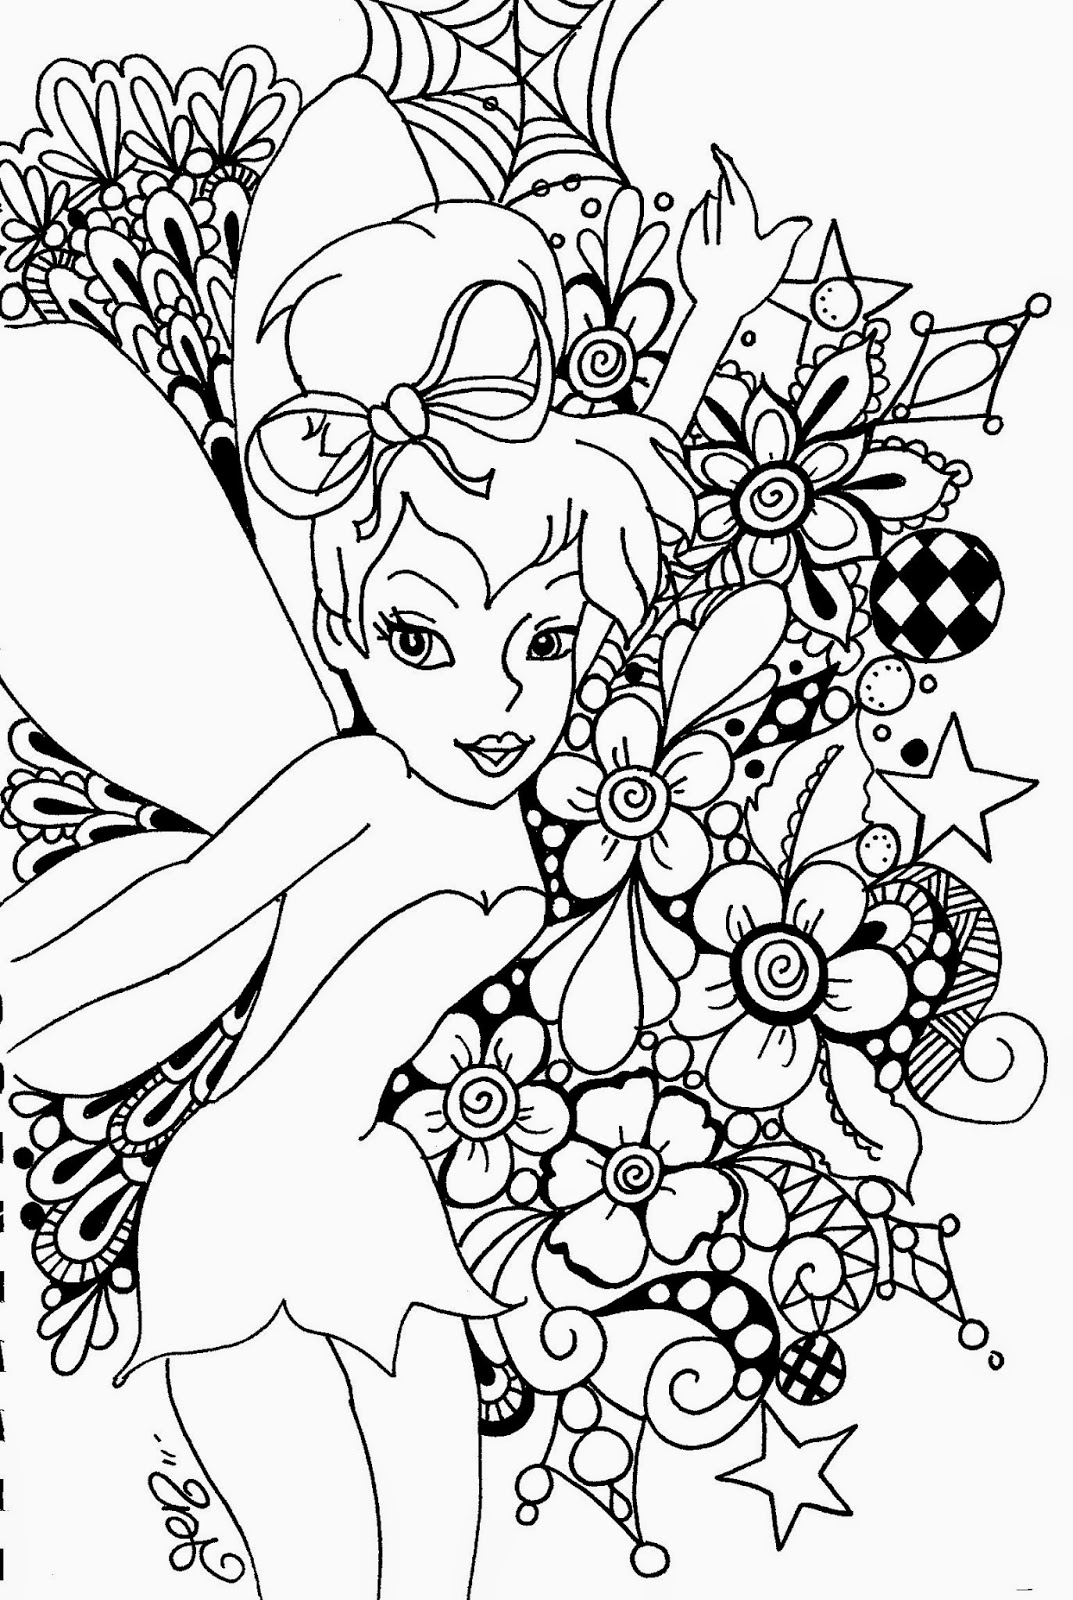 tinkerbell coloring book coloring pages tinkerbell coloring pages and clip art coloring tinkerbell book